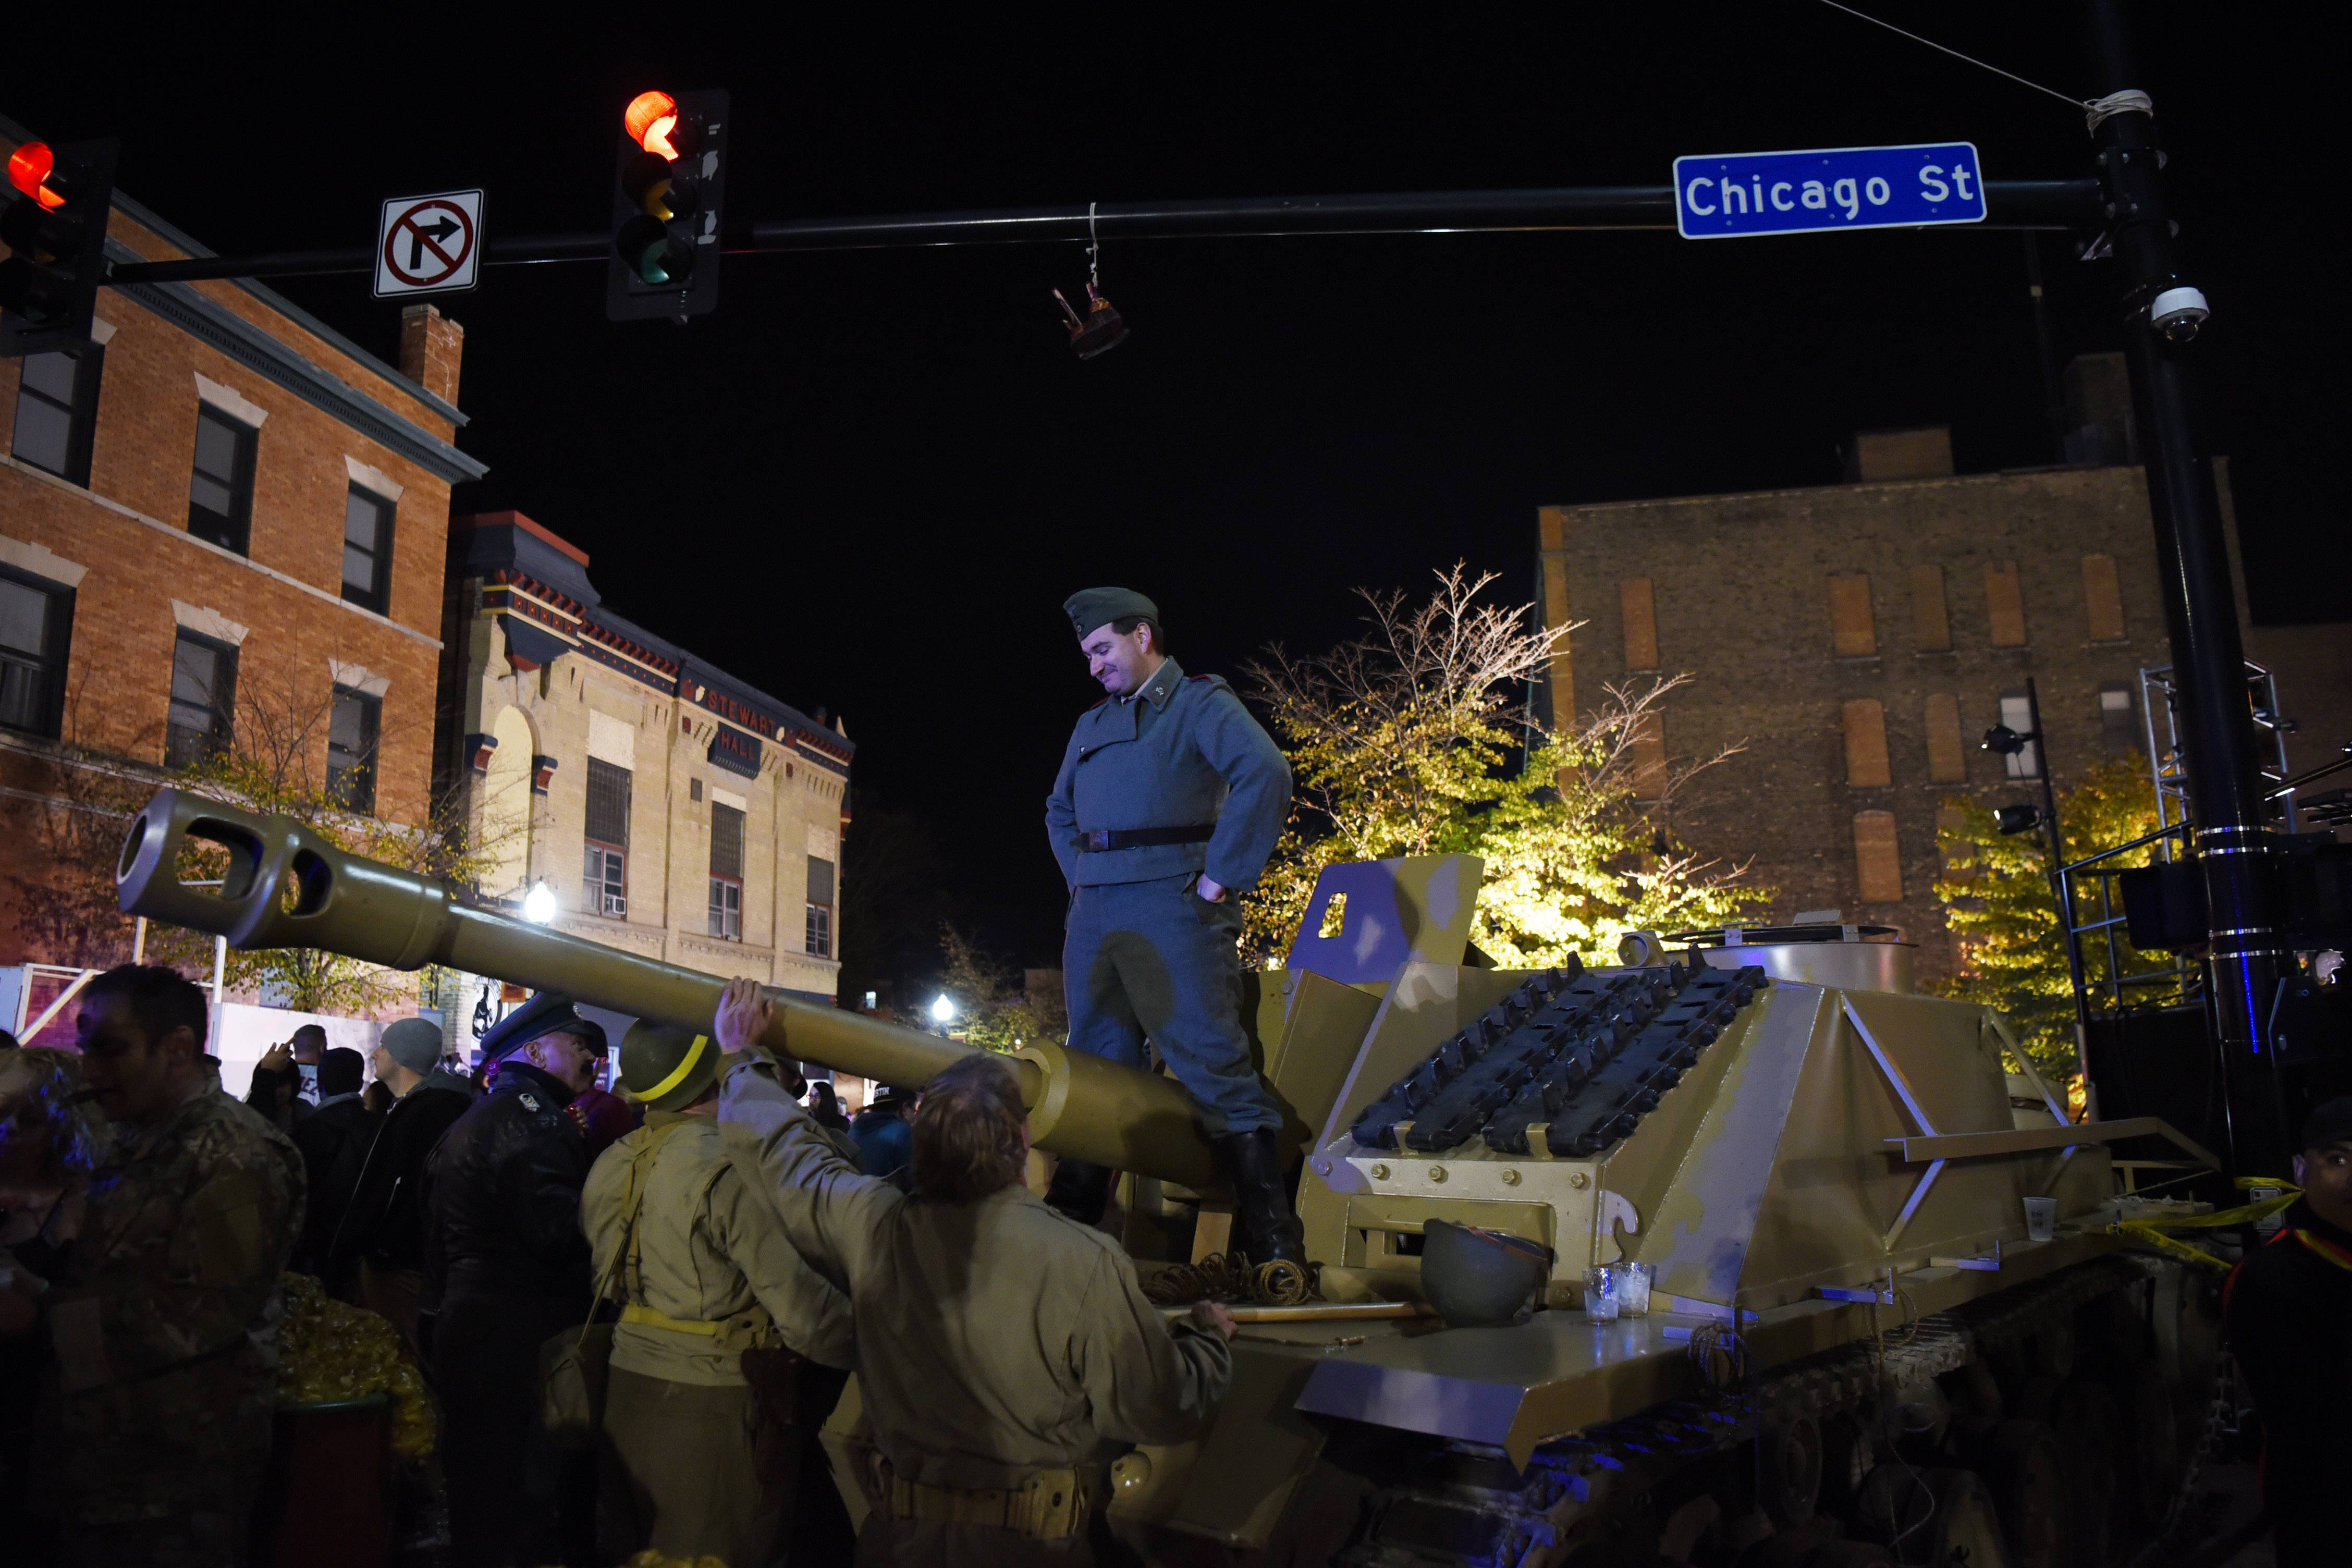 A tank and costumed soldiers are part of the scene during last year's Nightmare on Chicago Street.